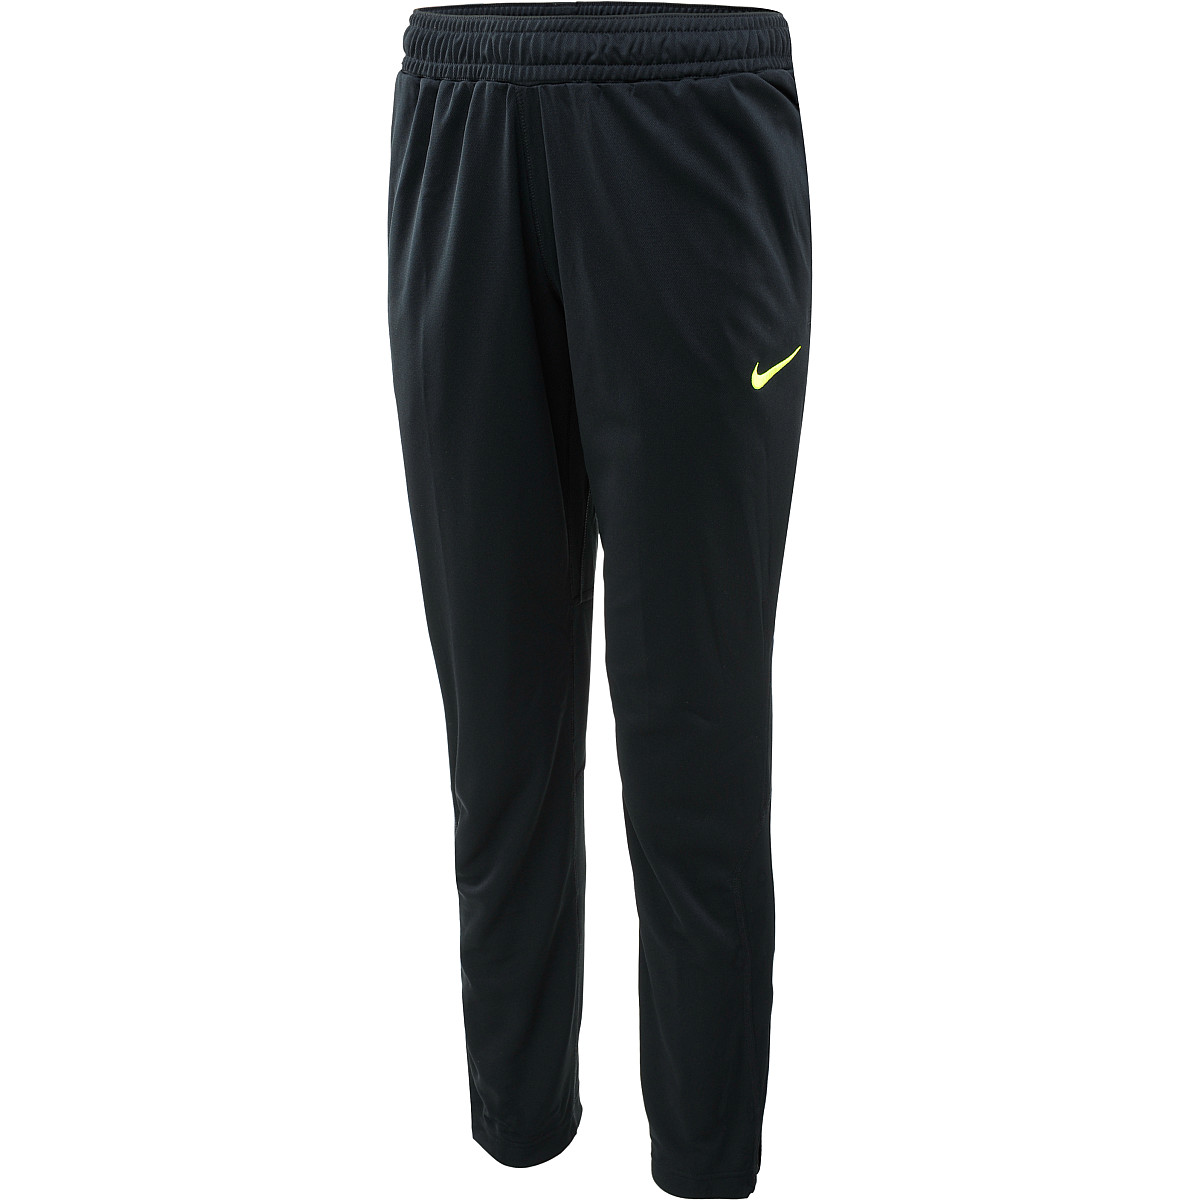 New Adidas Soccer Tiro Speed Pants For Women  We Love Sports